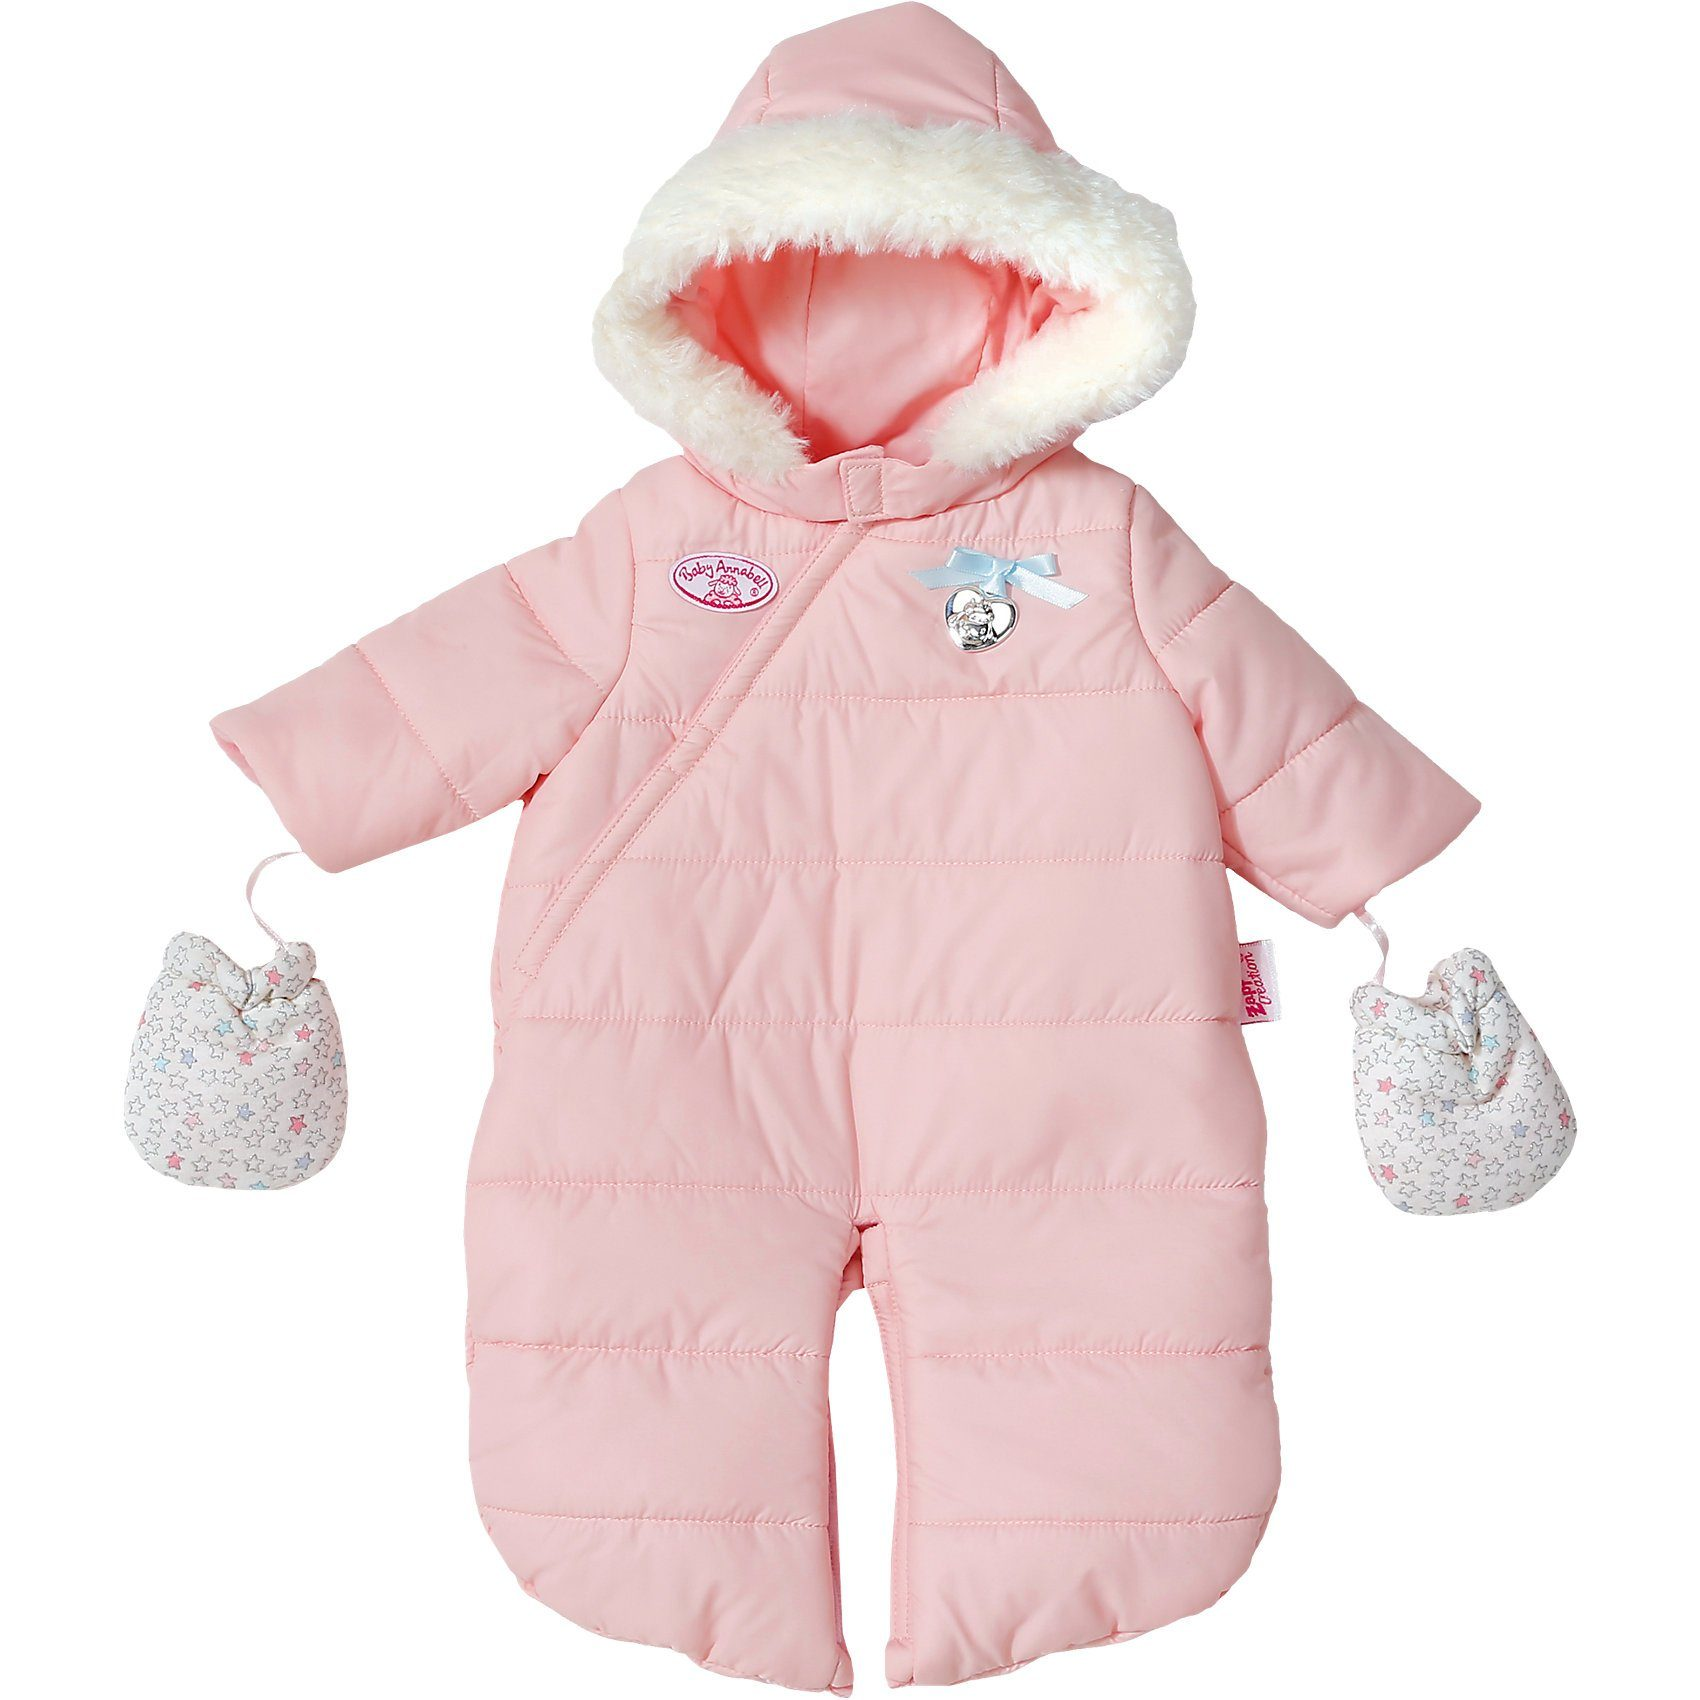 Zapf Creation Baby Annabell® Puppenkleidung Winter Set 2in1, 46 cm